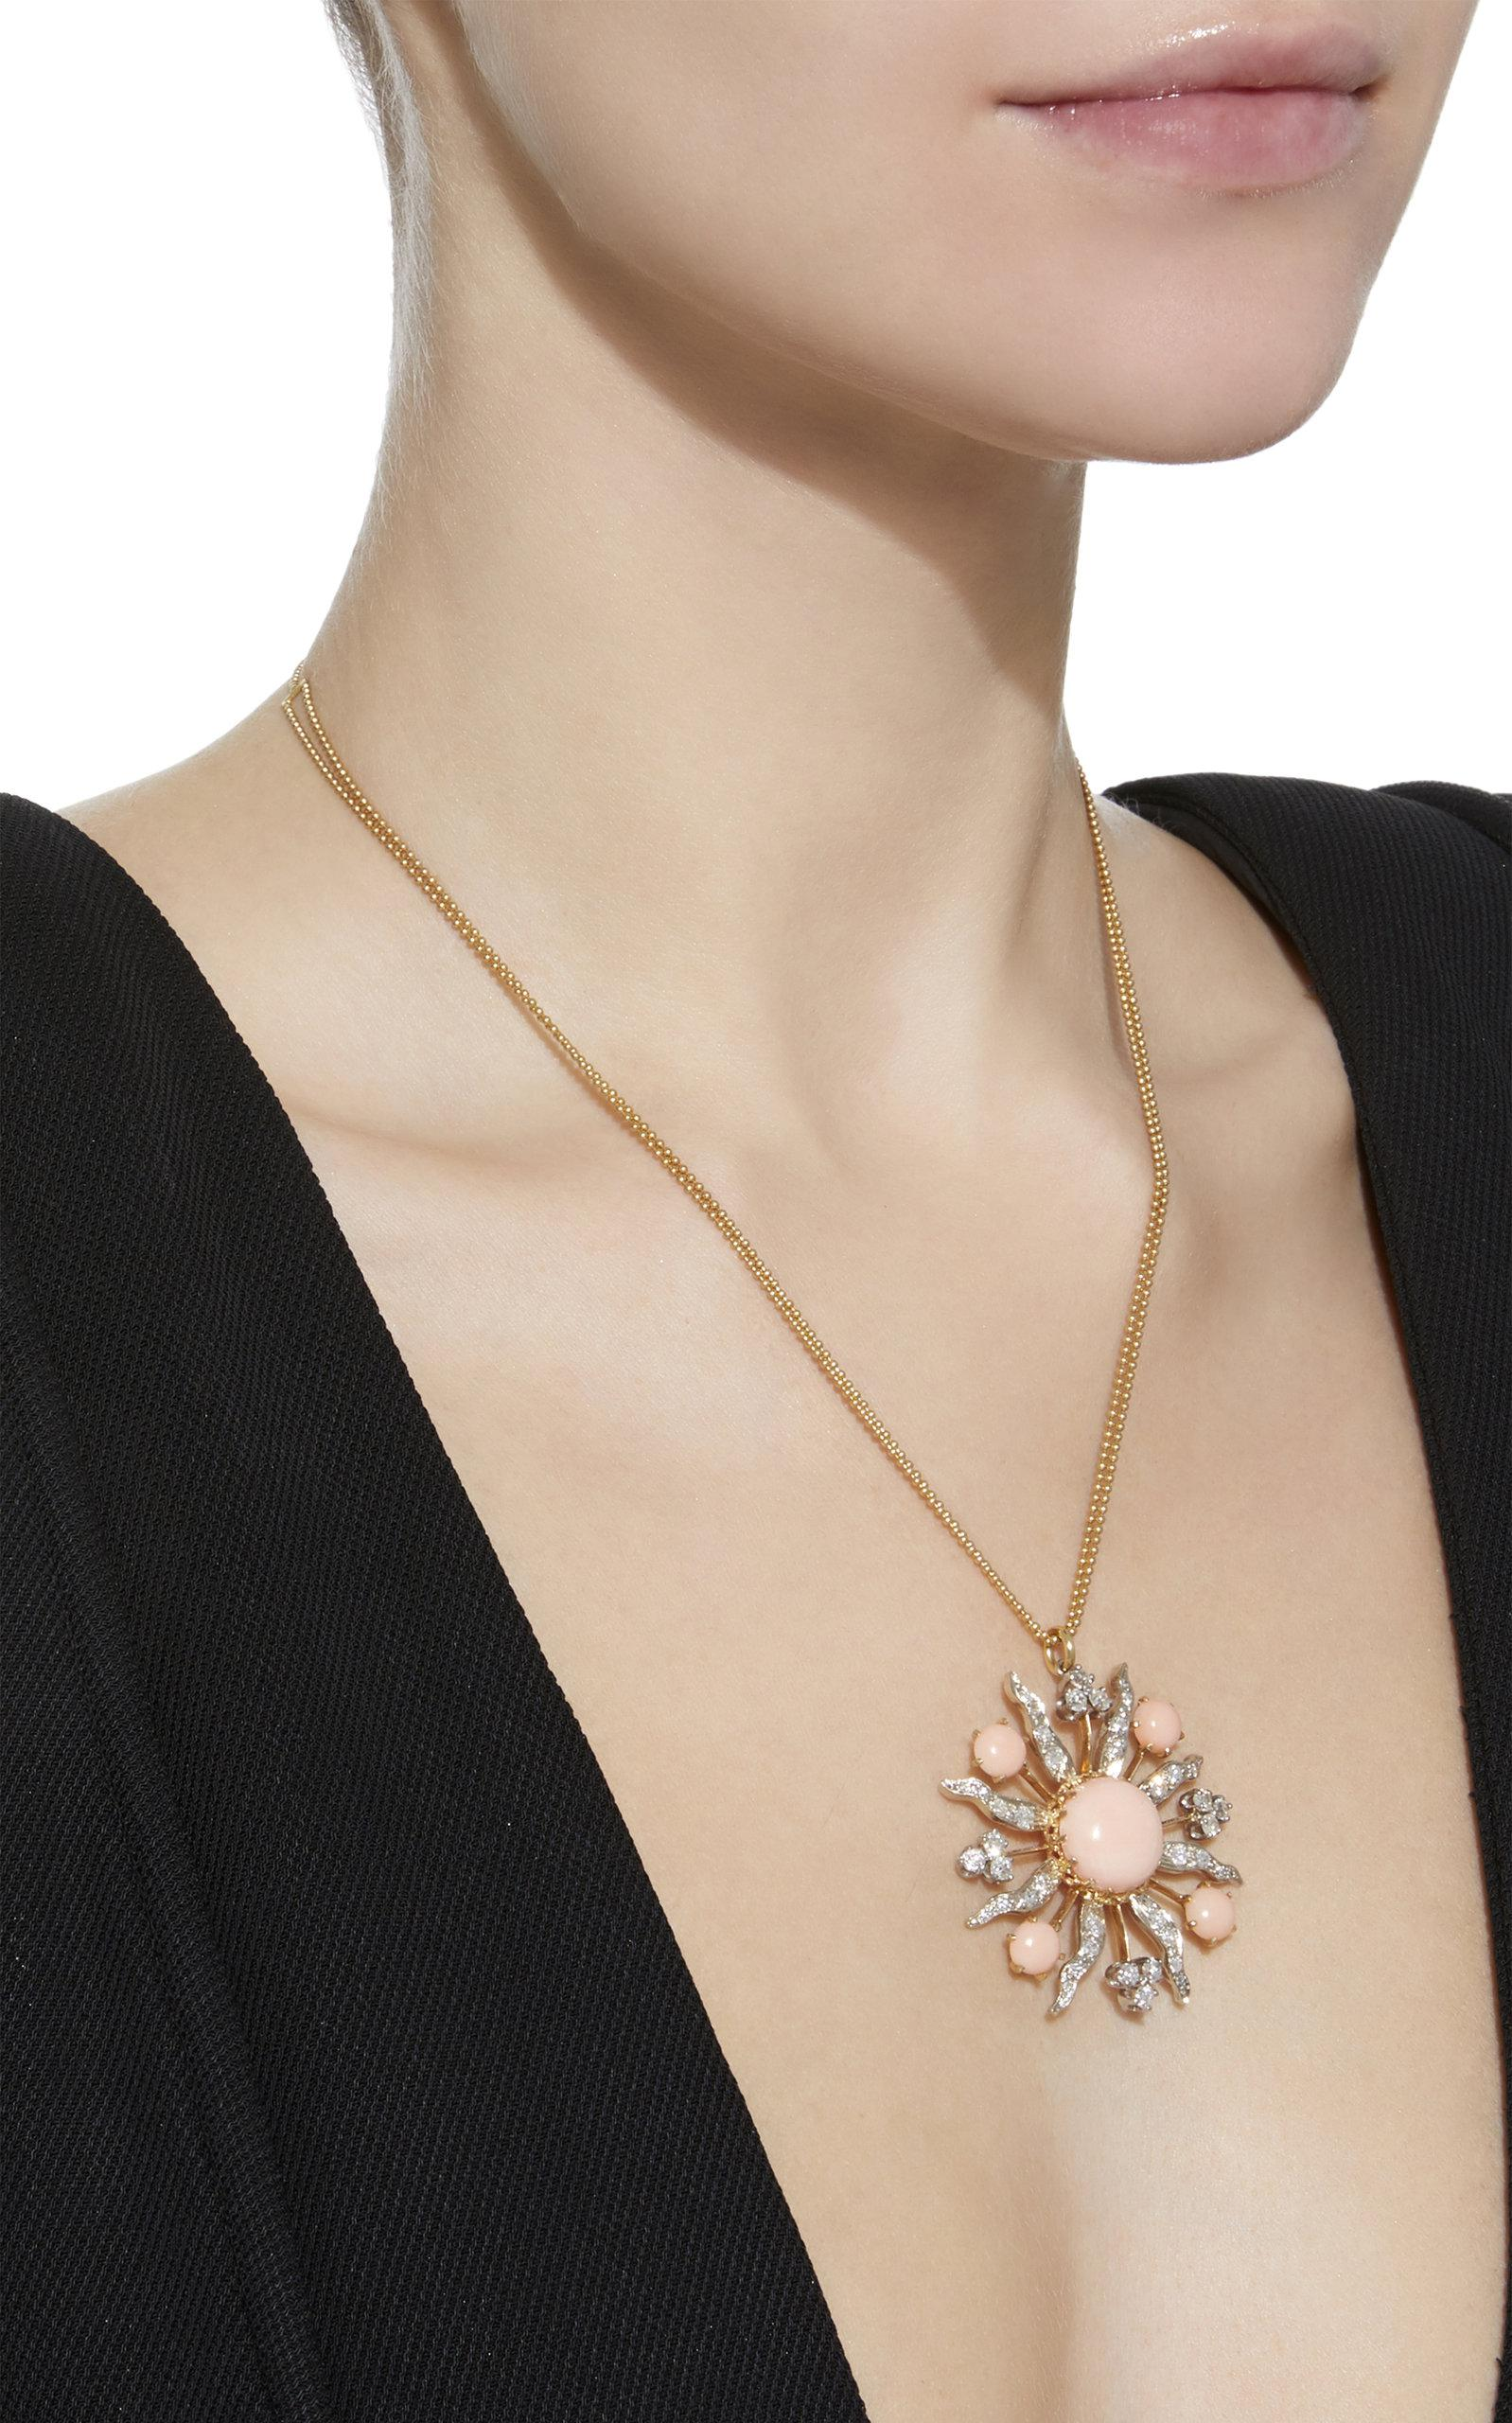 Renee Lewis One-of-a-kind Gold Antique Diamond And Angelskin Coral Sunburst Necklace in Pink